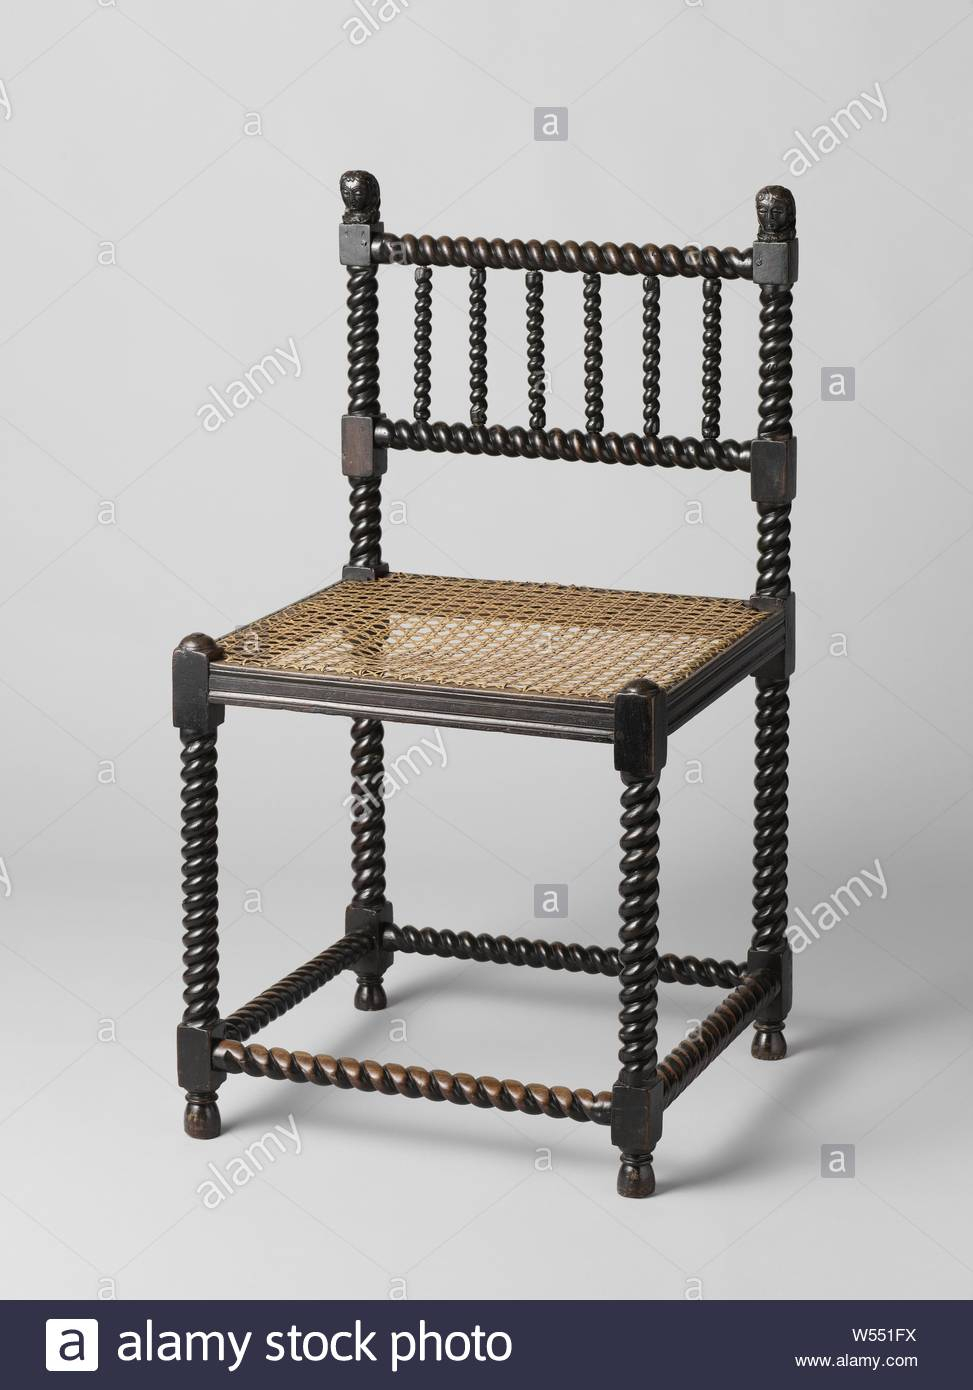 Crowned Chair Stock Photos & Crowned Chair Stock Images – Alamy Pertaining To Newcombe Warm Brown Windsor Rocking Chairs (#11 of 20)